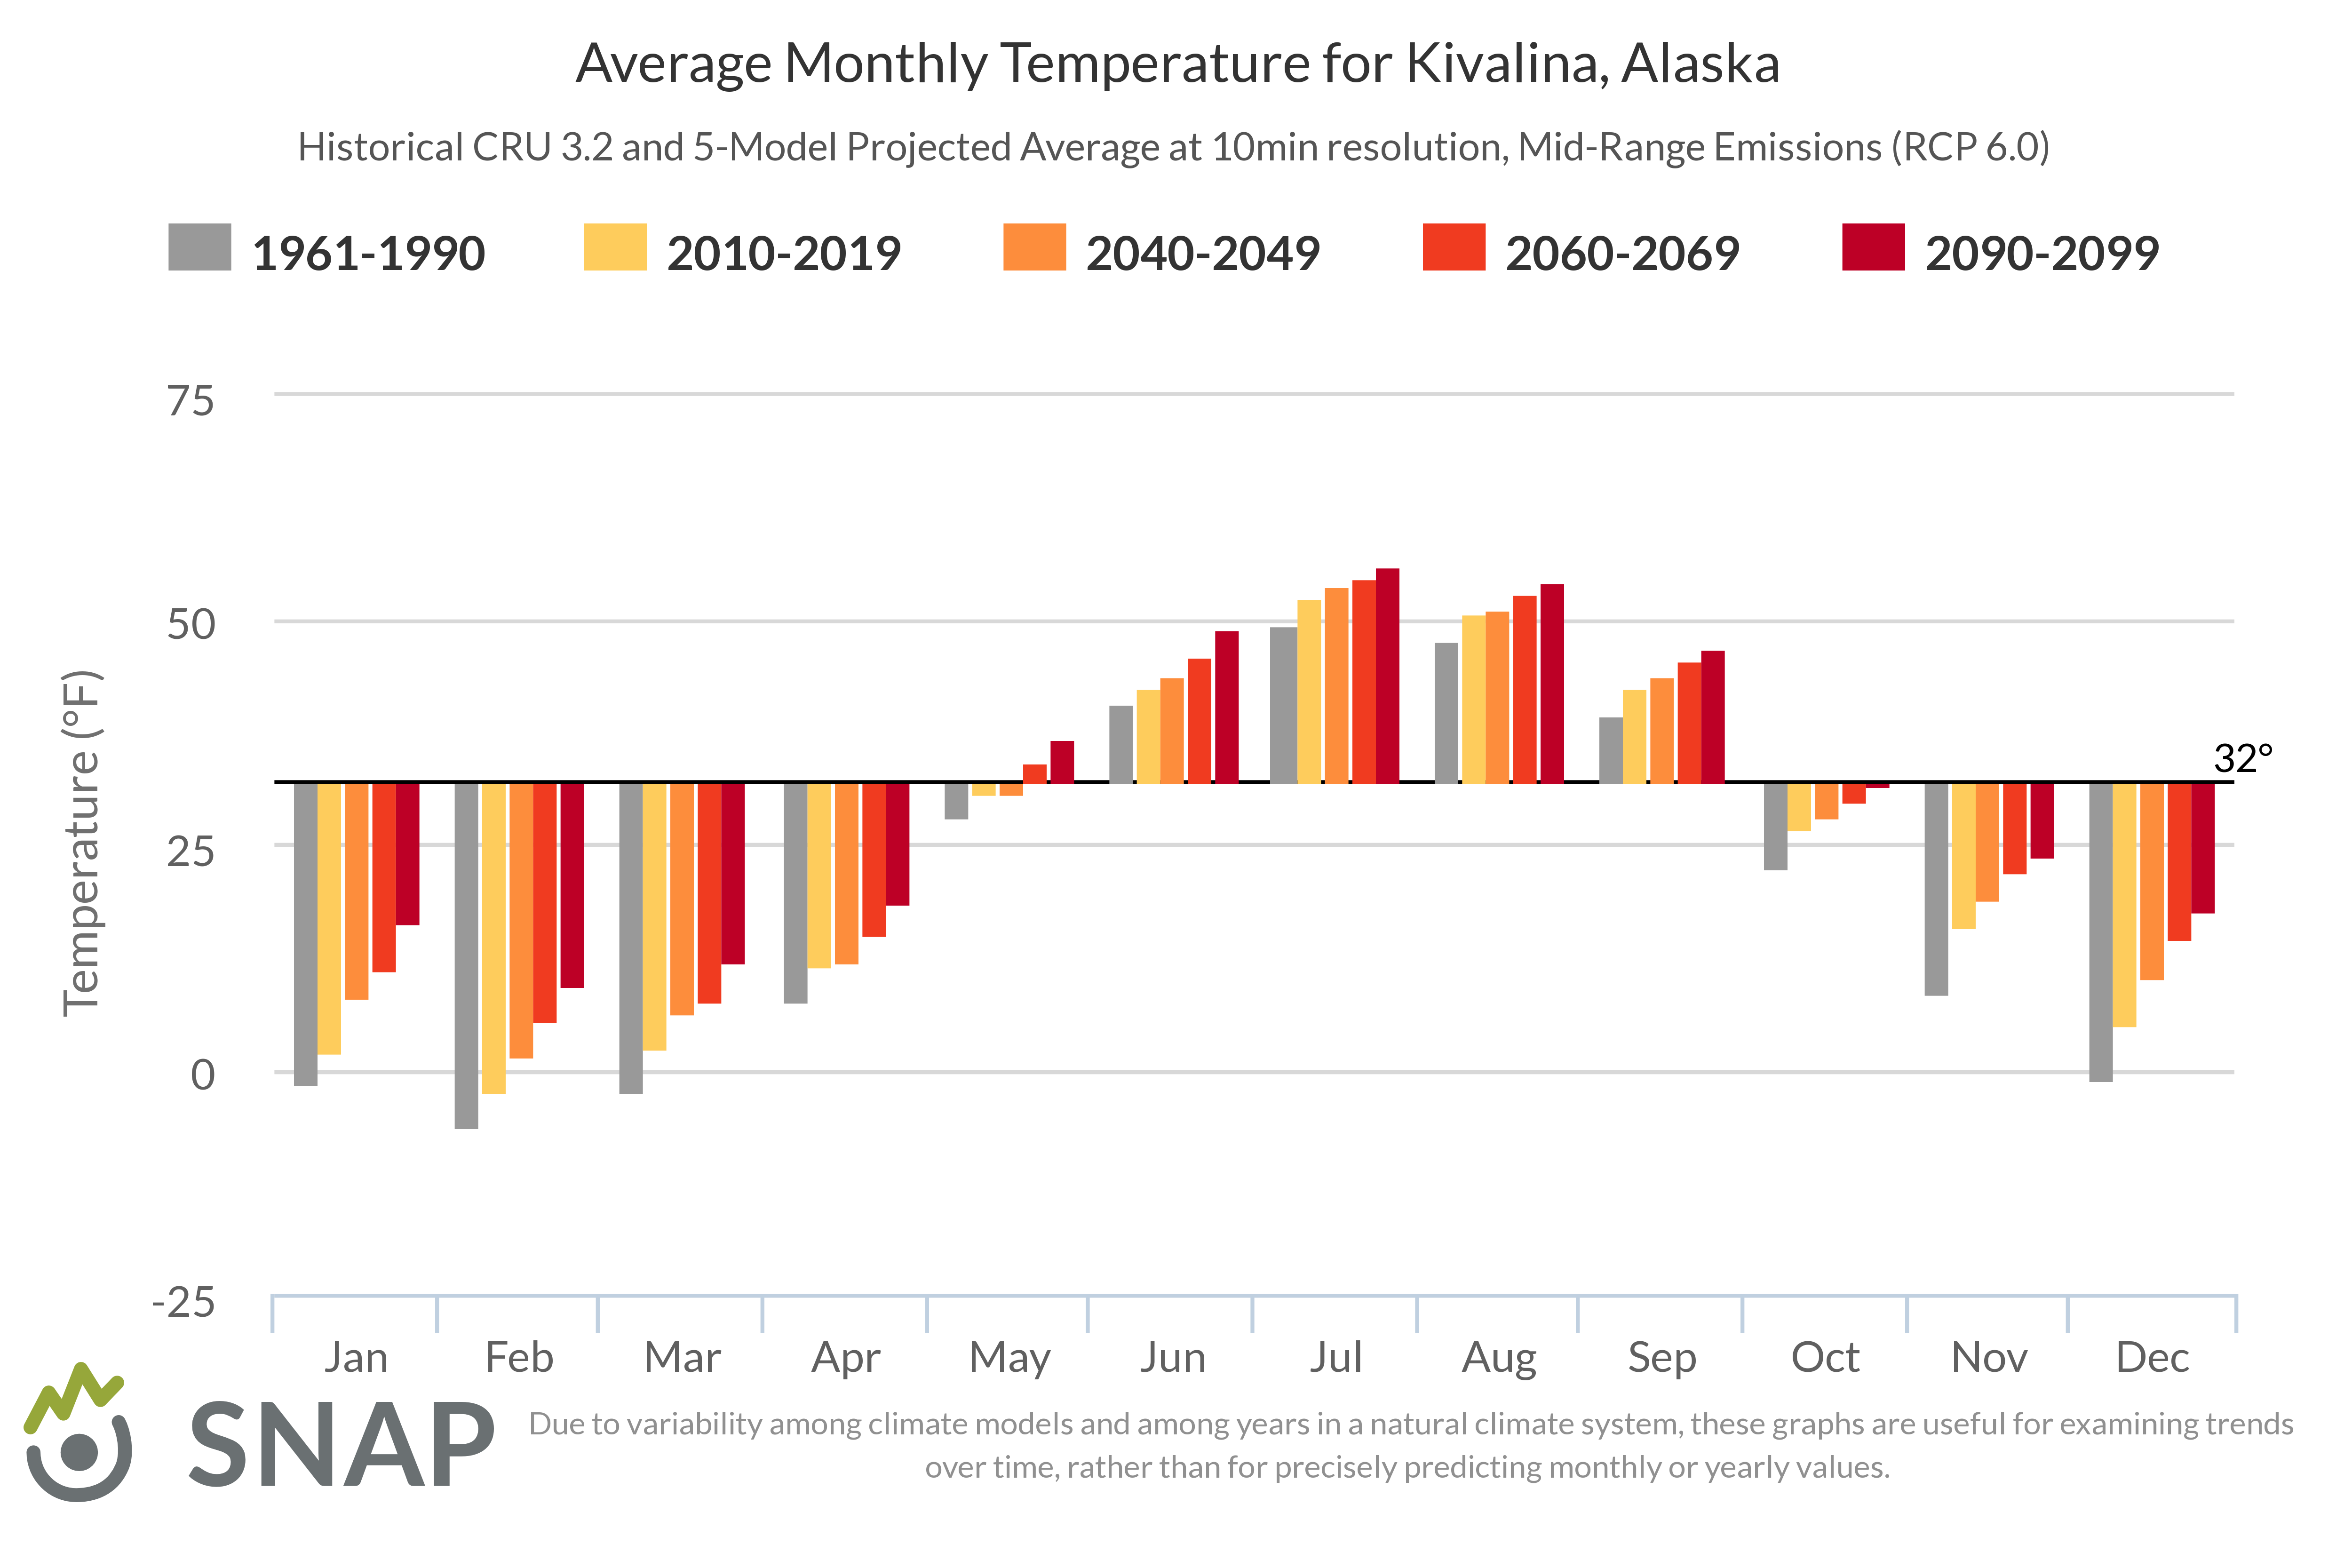 Graph showing the average monthly temperature for Kivalina, Alaska